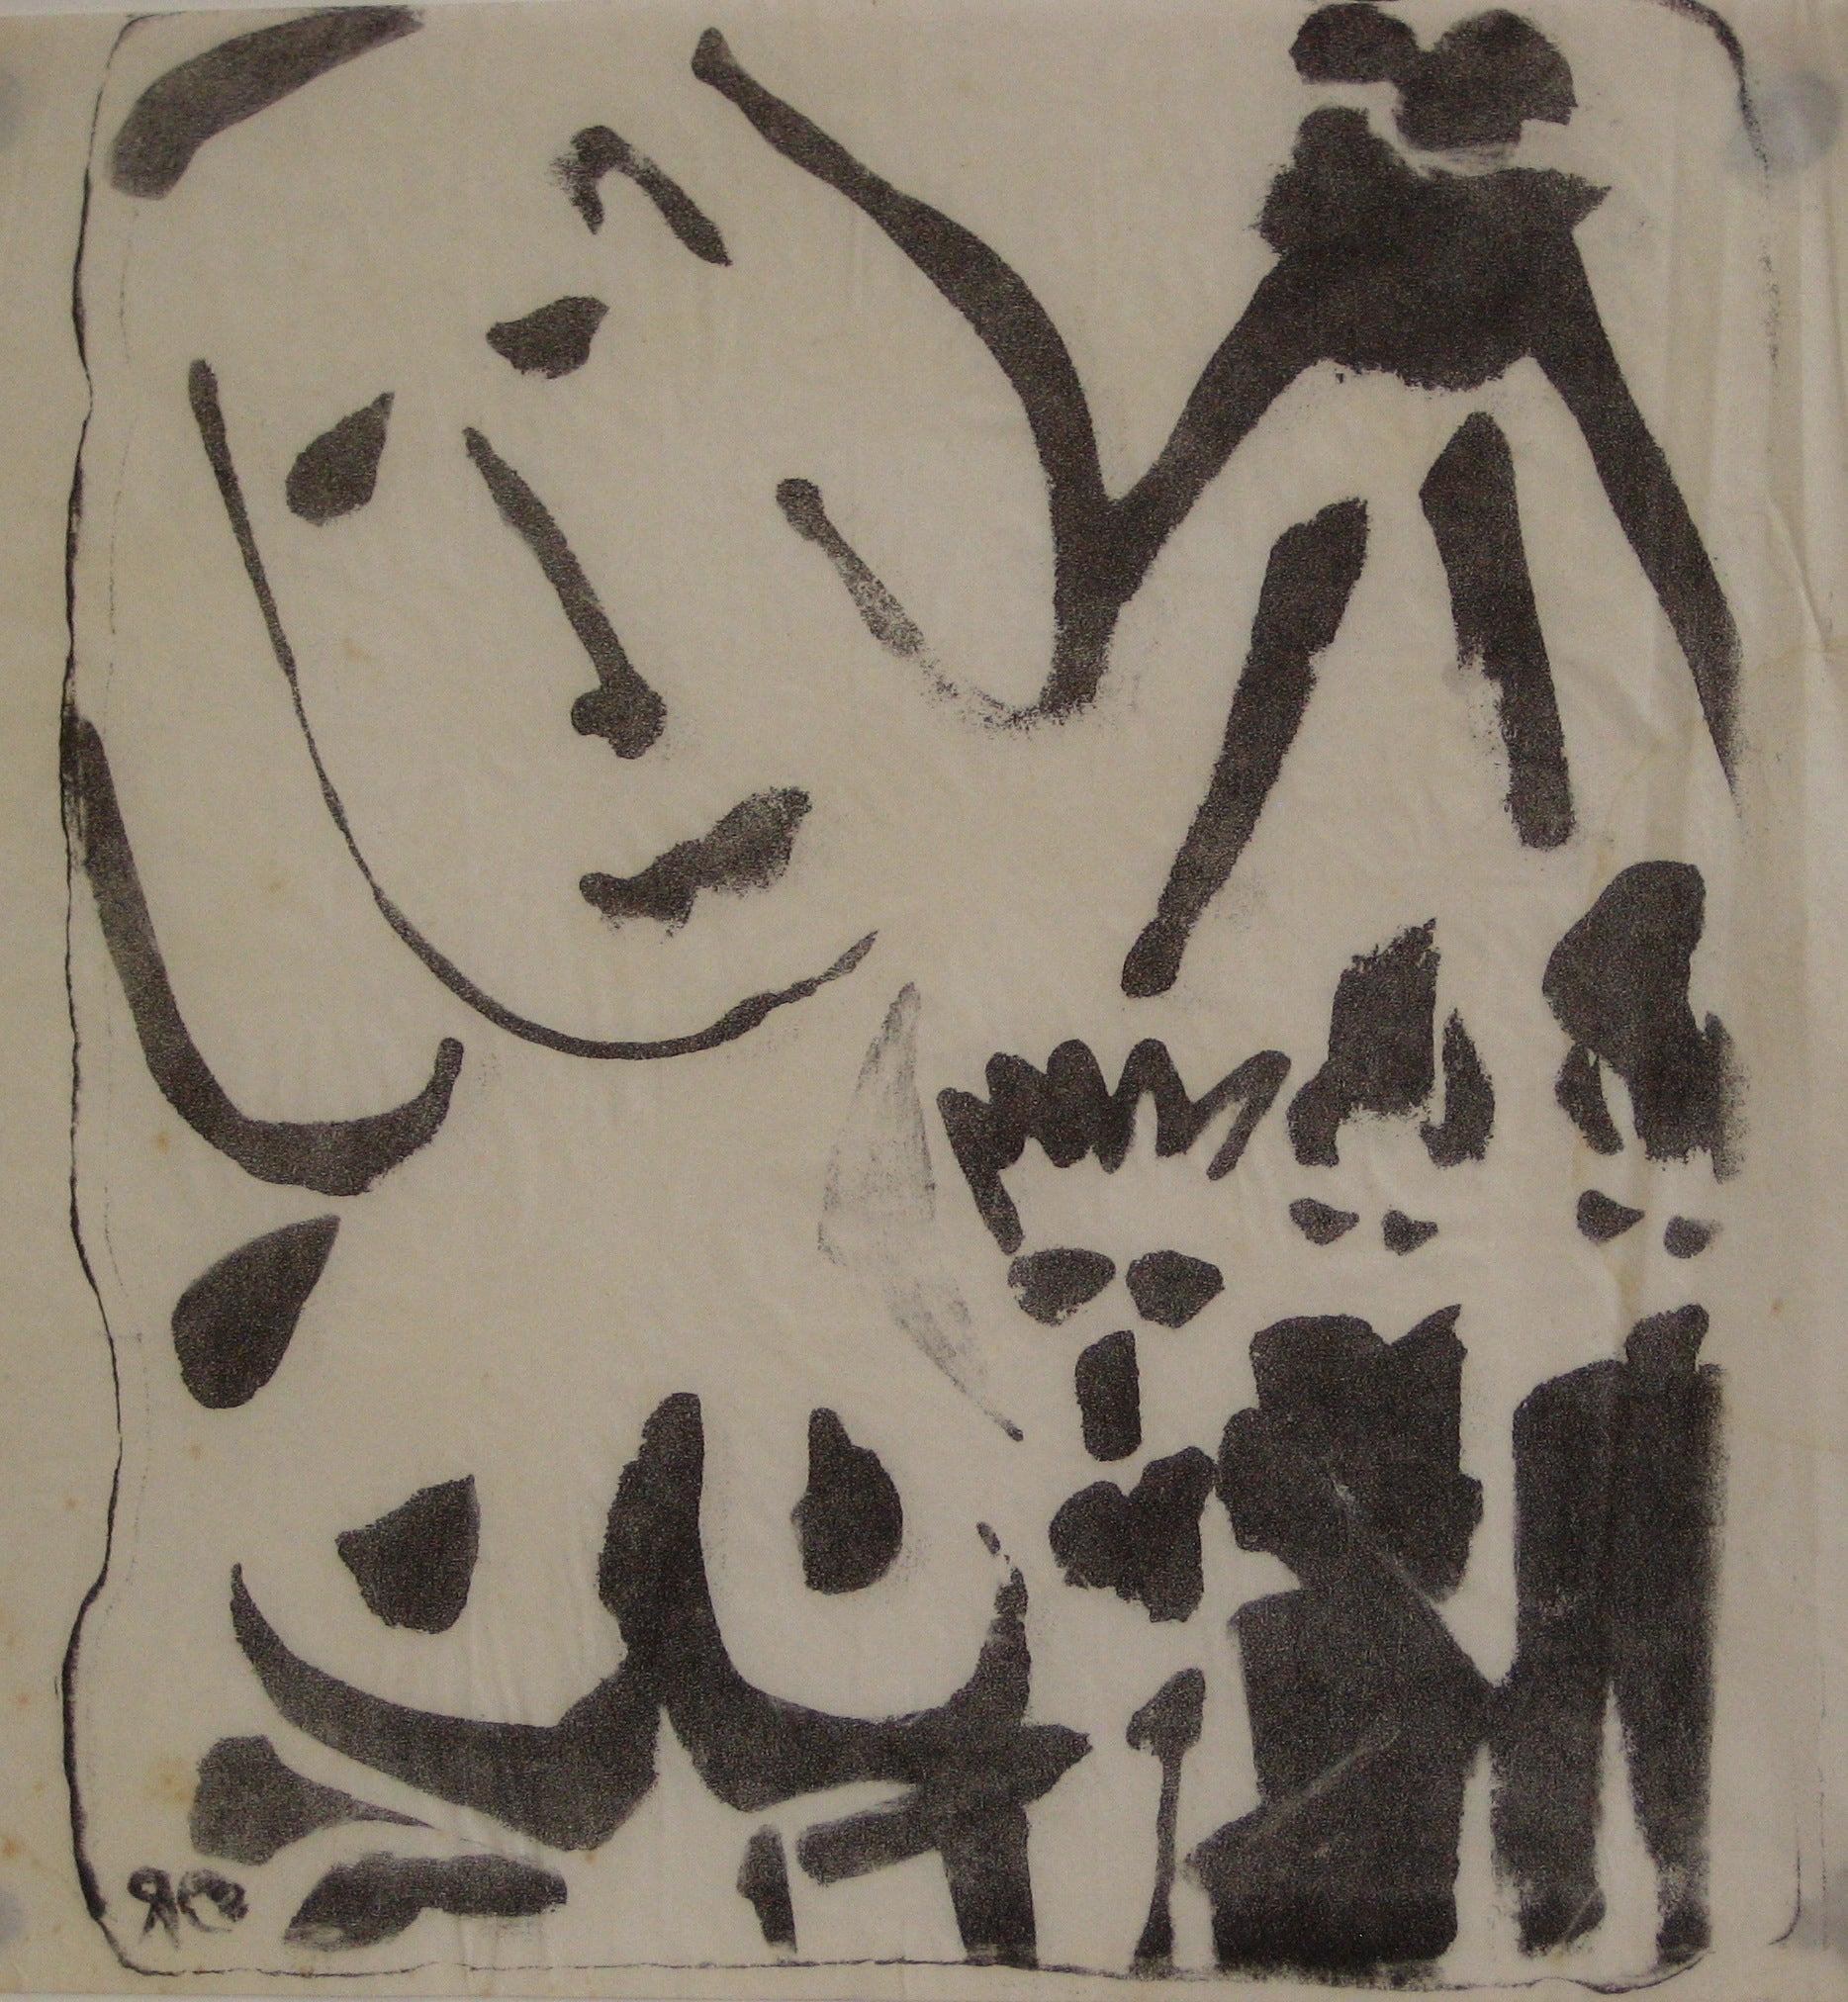 Modernist Abstracted Figures<br>1940-70s, Lithograph<br><br>#5379